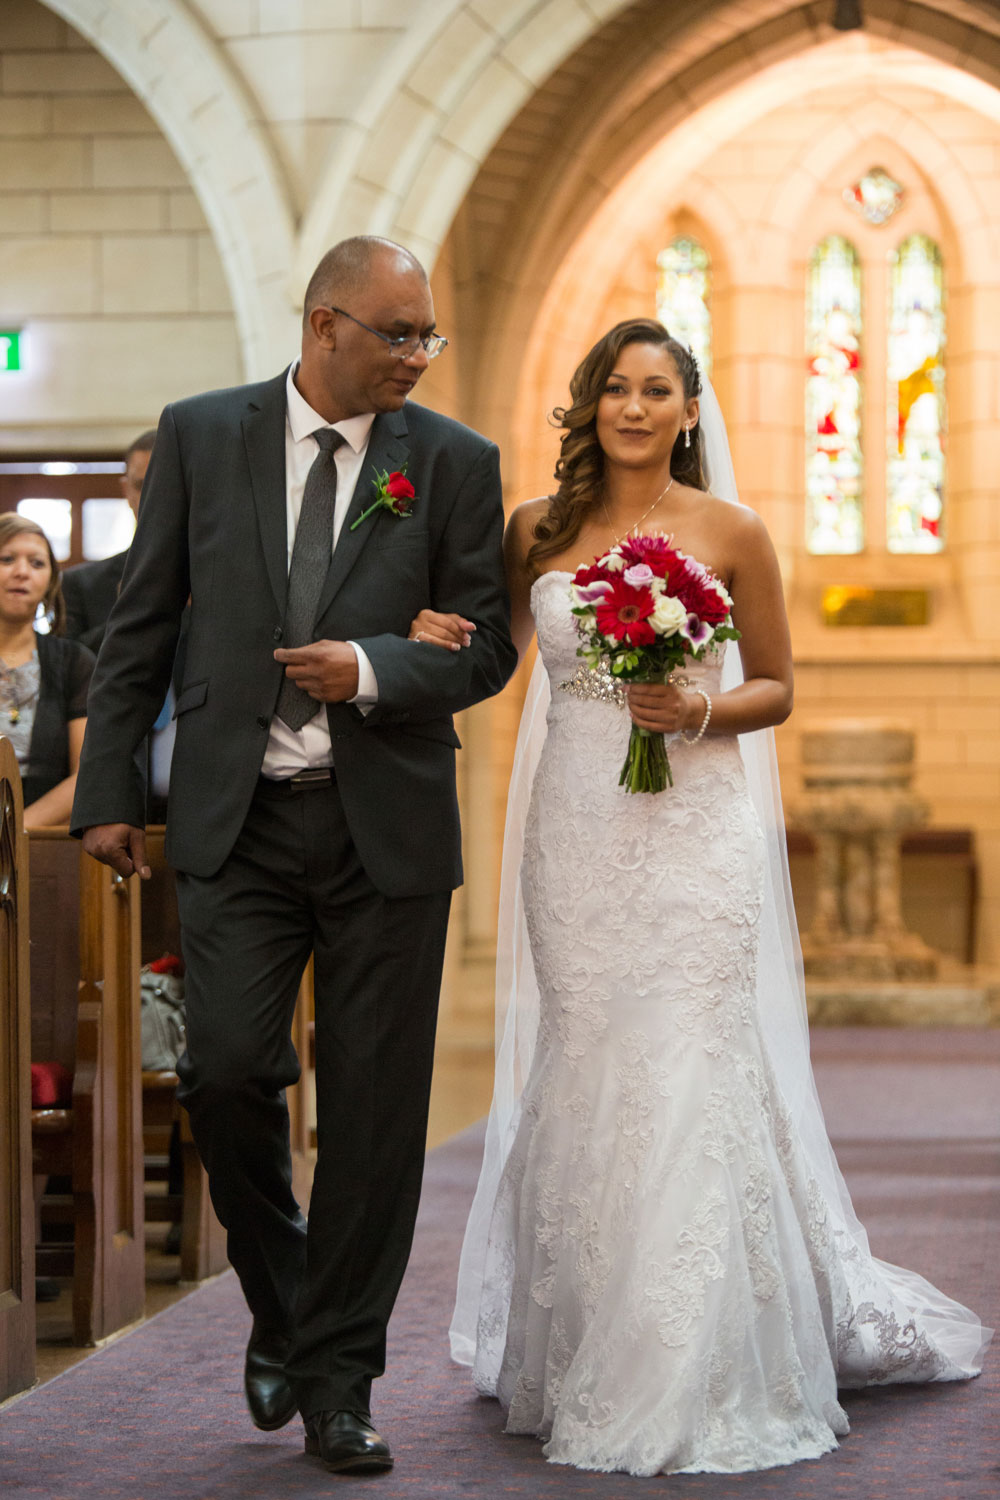 auckland wedding bride walking down the aisle